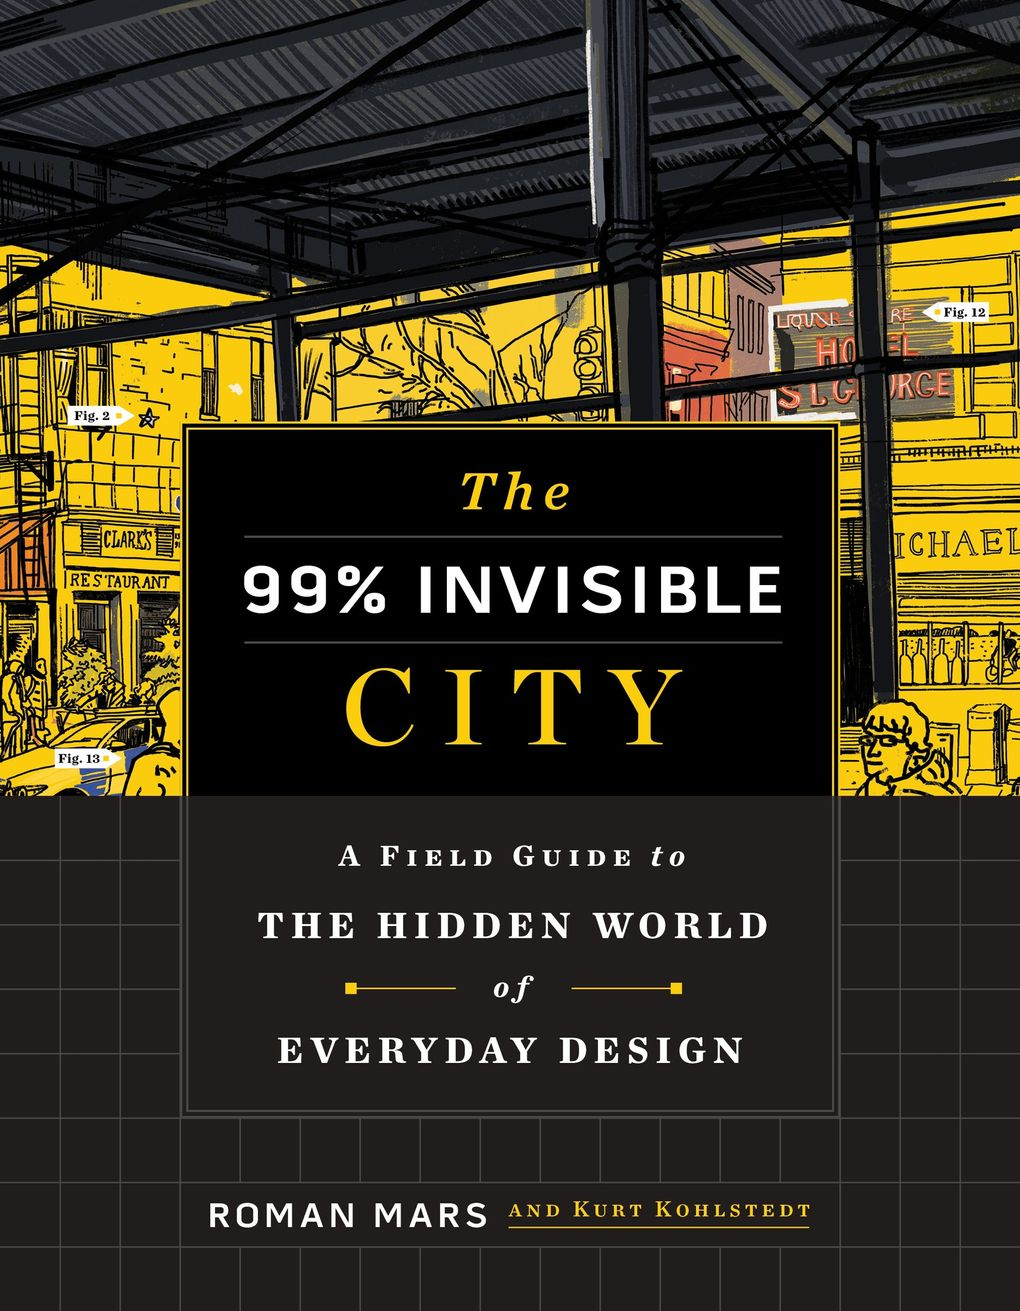 """""""The 99% Invisible City"""" by Roman Mars and Kurt Kohlstedt (Houghton Mifflin Harcourt)"""